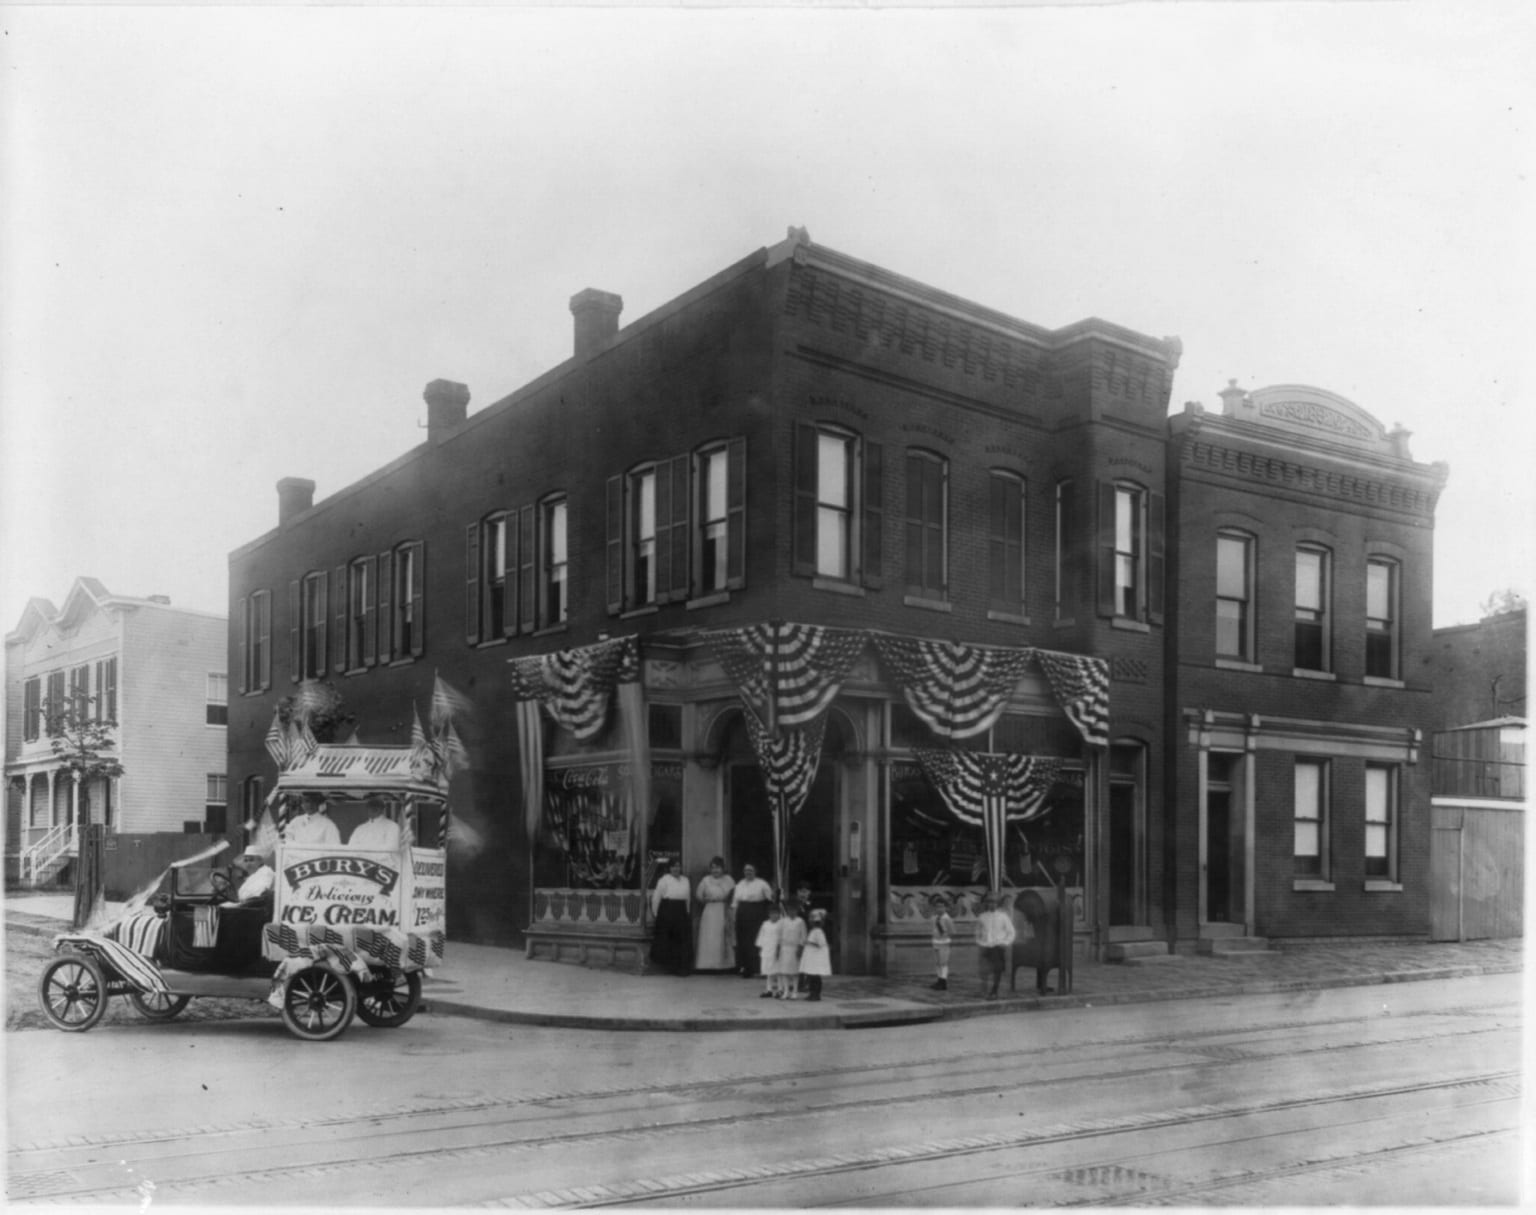 Bury's drug store around 1919